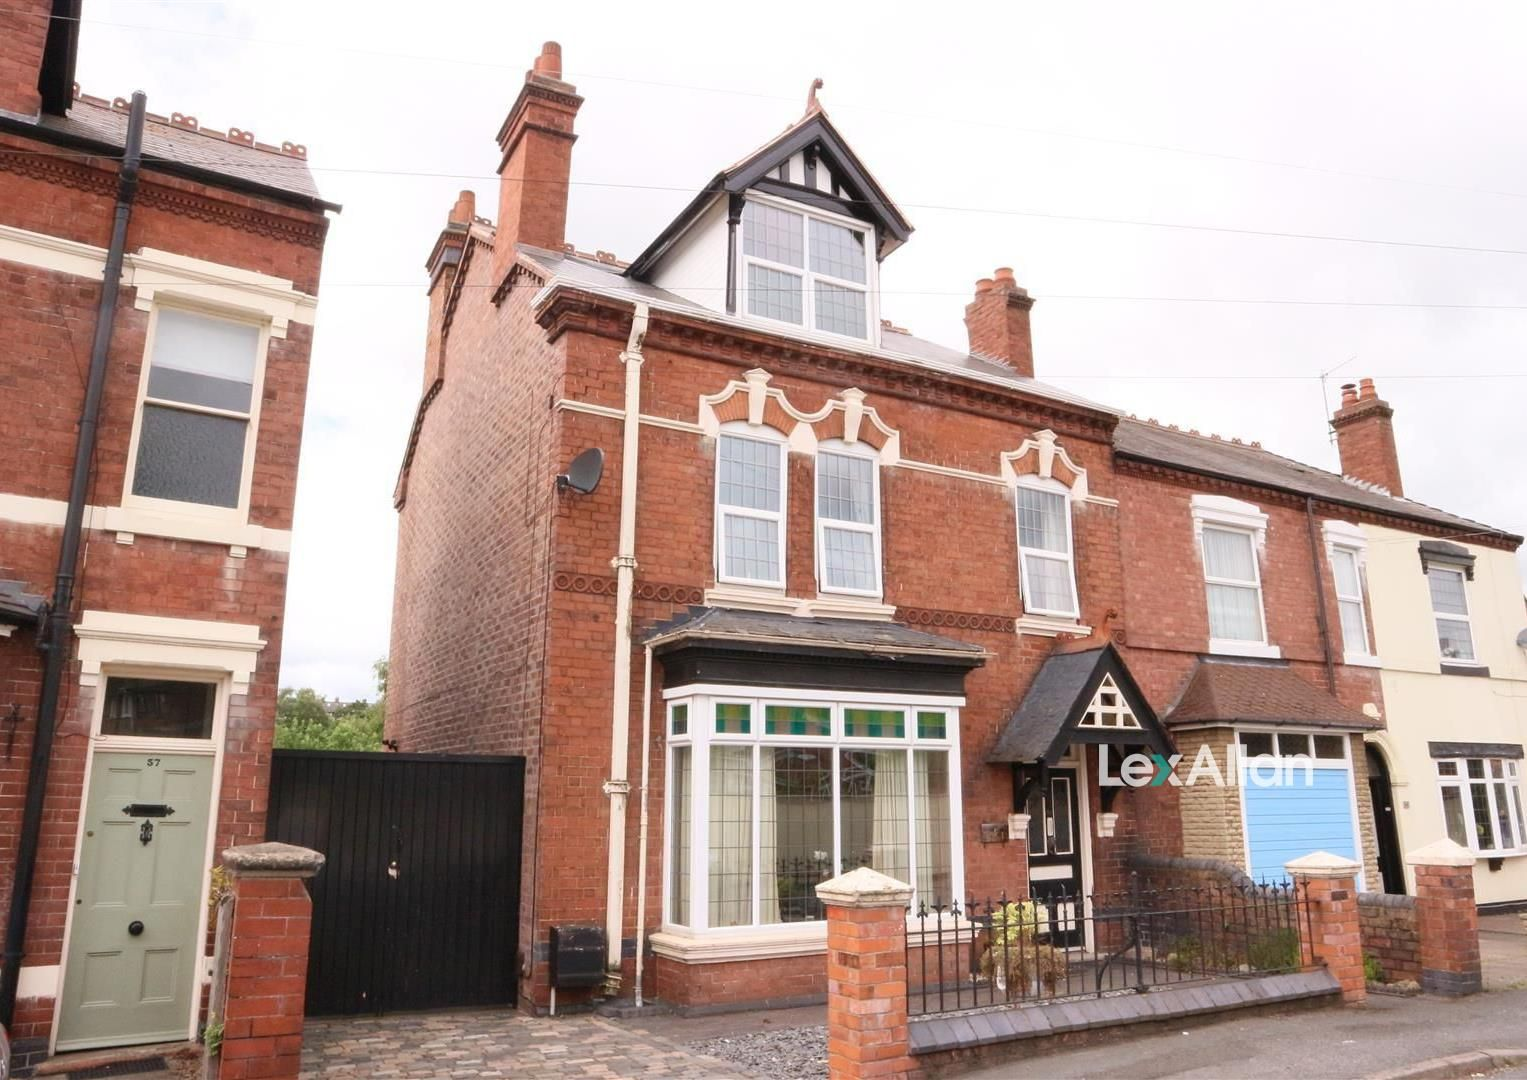 4 bed end-of-terrace for sale, DY8